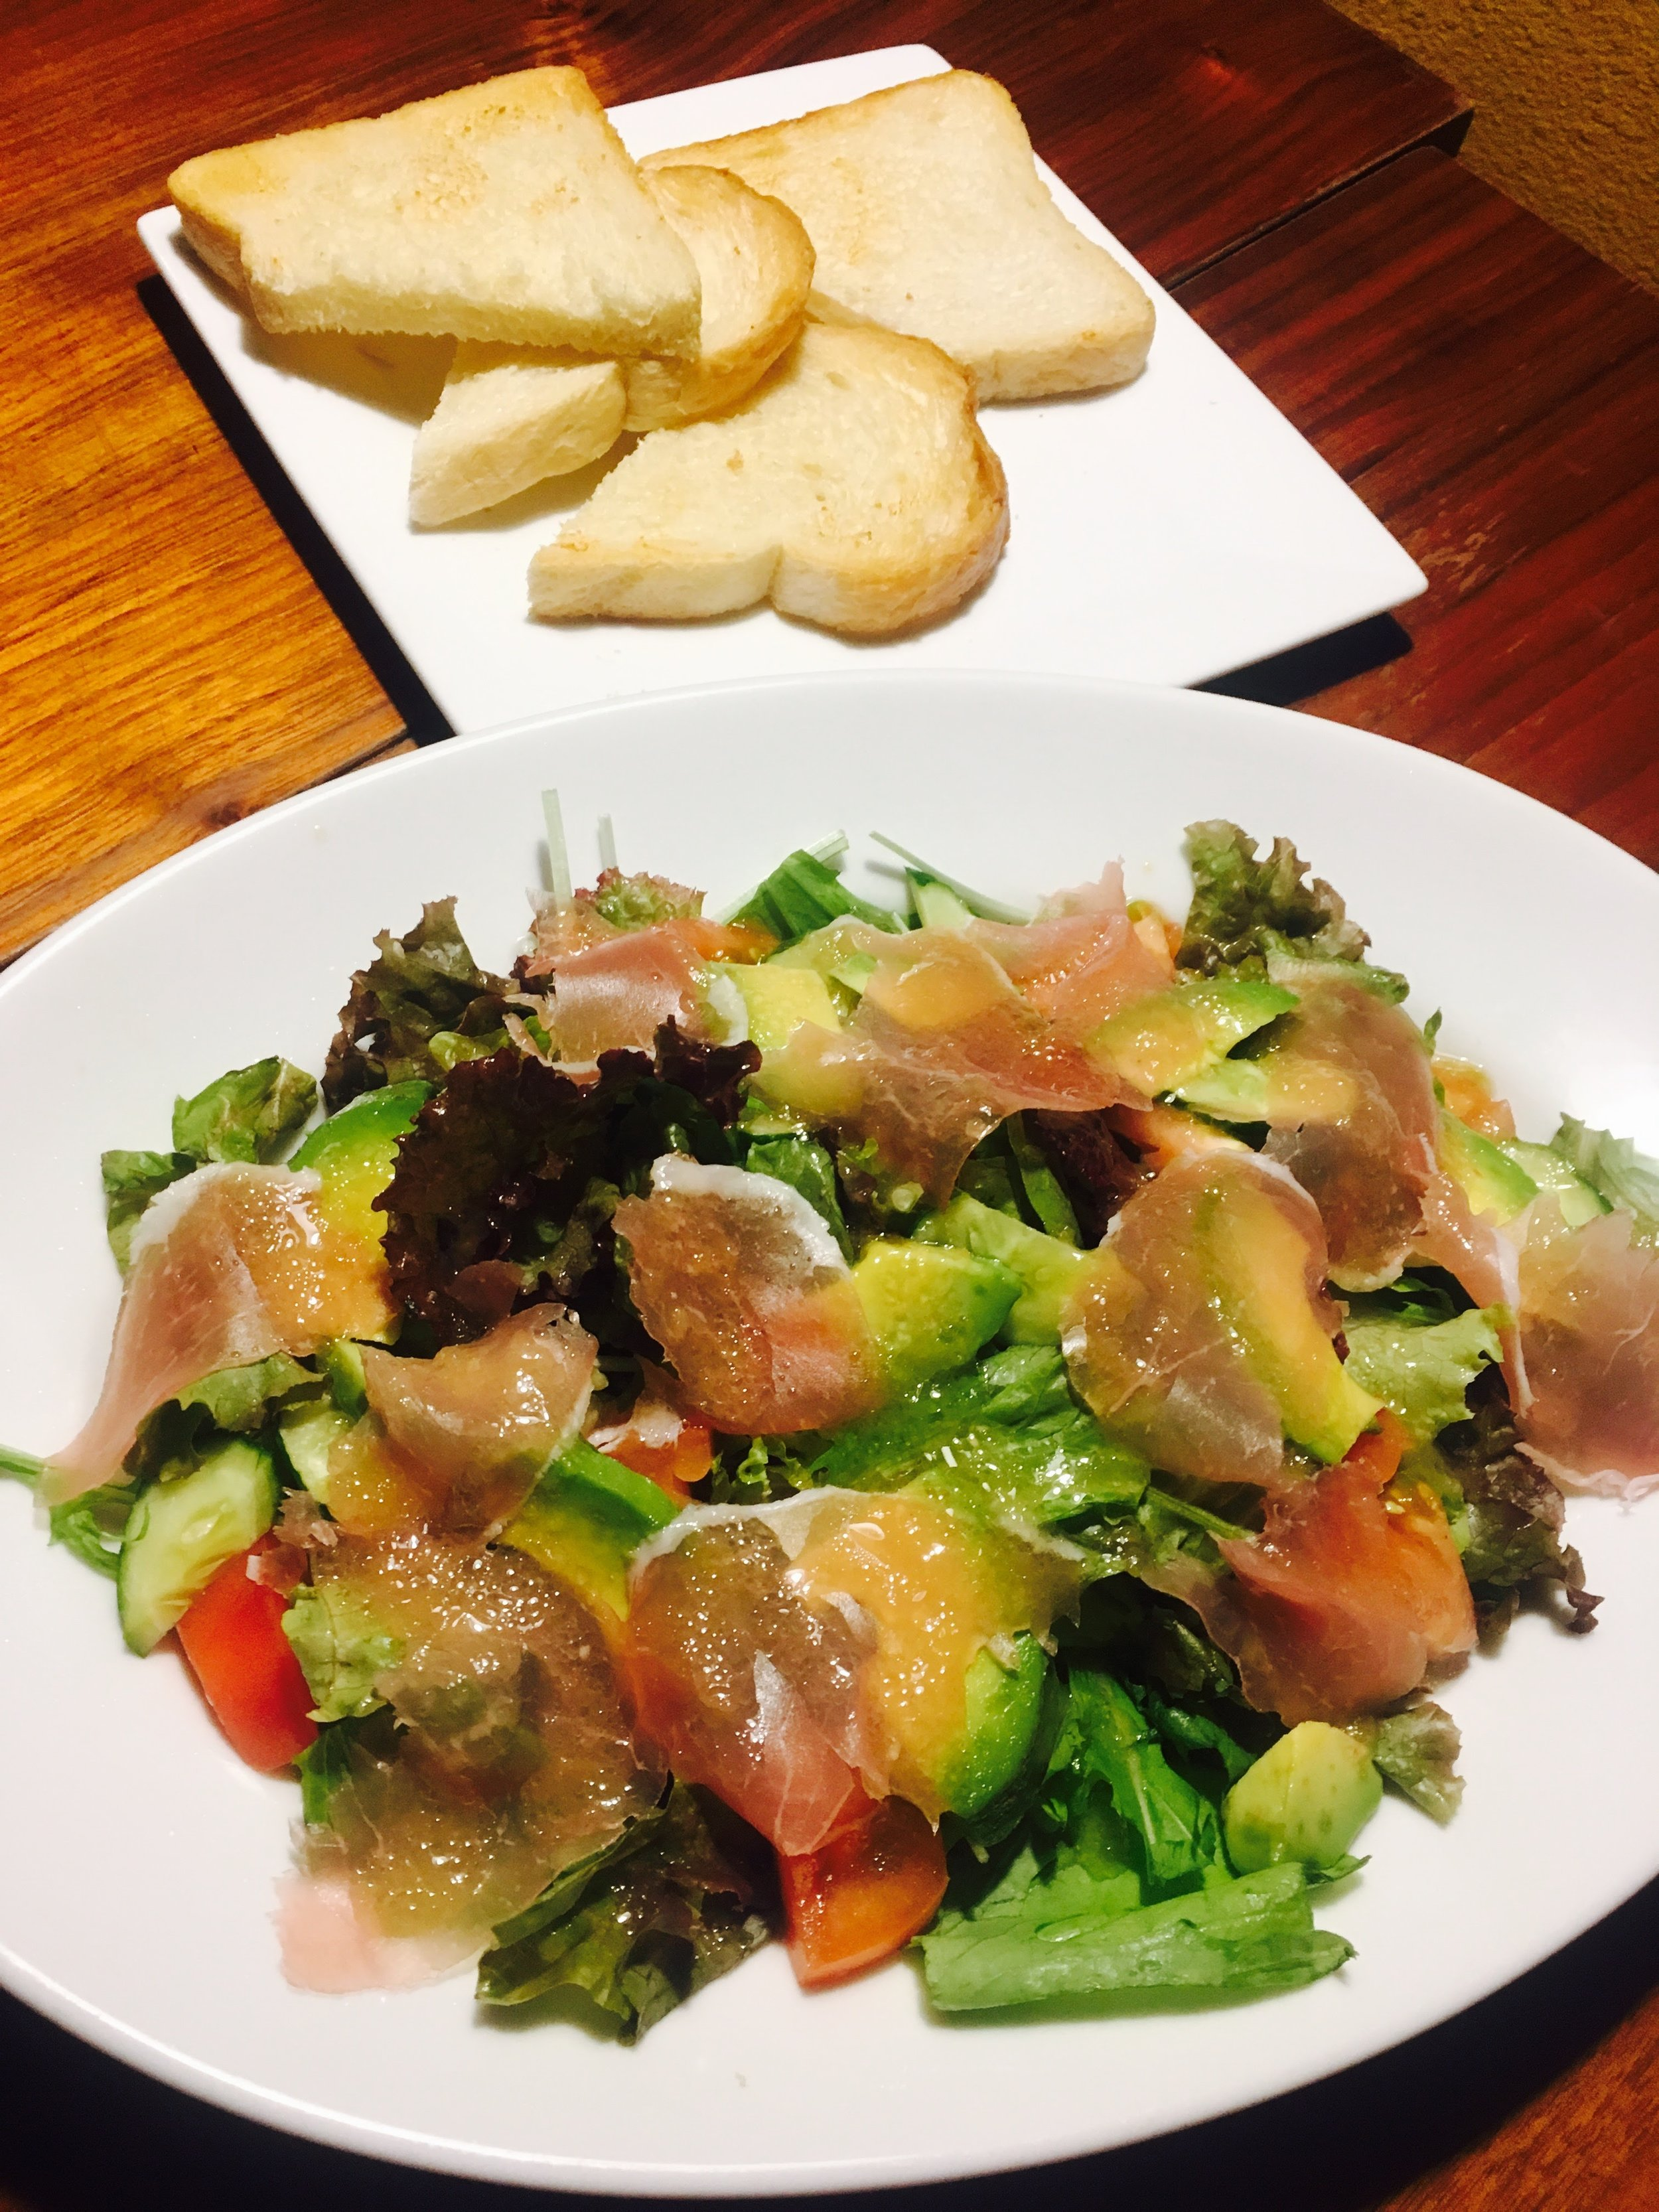 The Ham & Avocado Salad - Basically, a simple ham and avocado salad for ¥890 + Tax. For an additional ¥200, you can get a side of garlic bread.